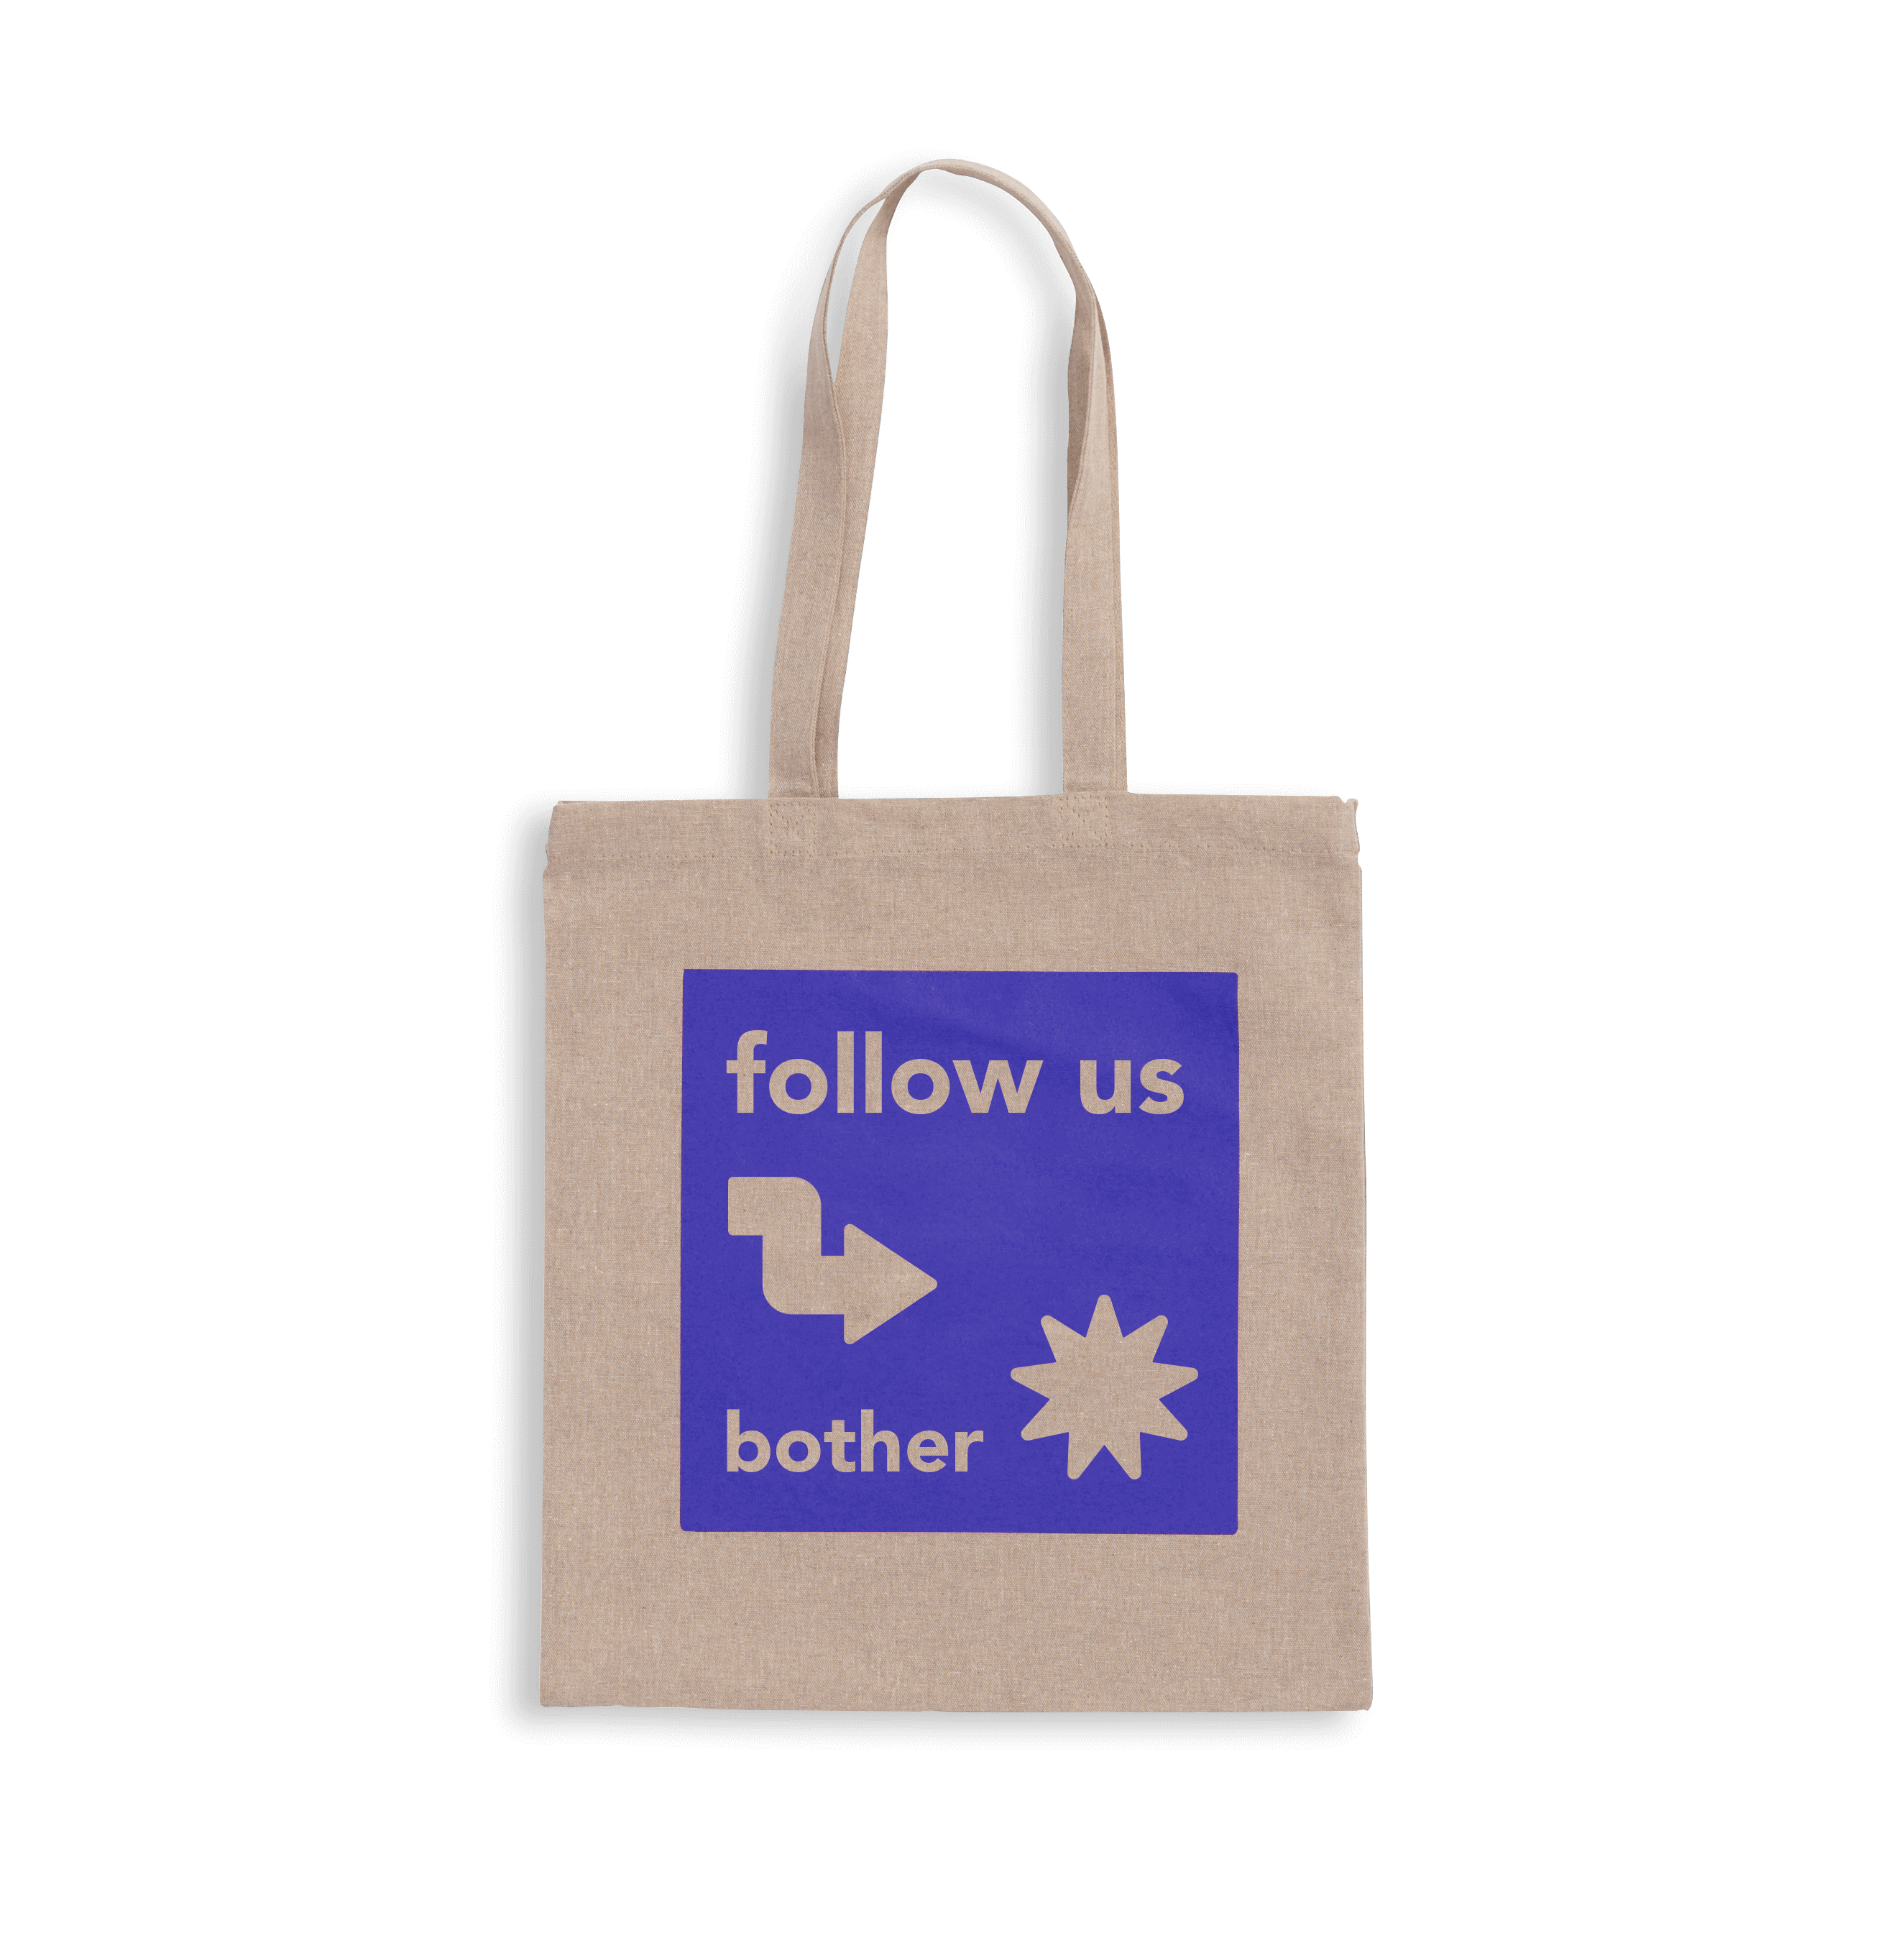 Light grey recycled fabric tote bag with purple print